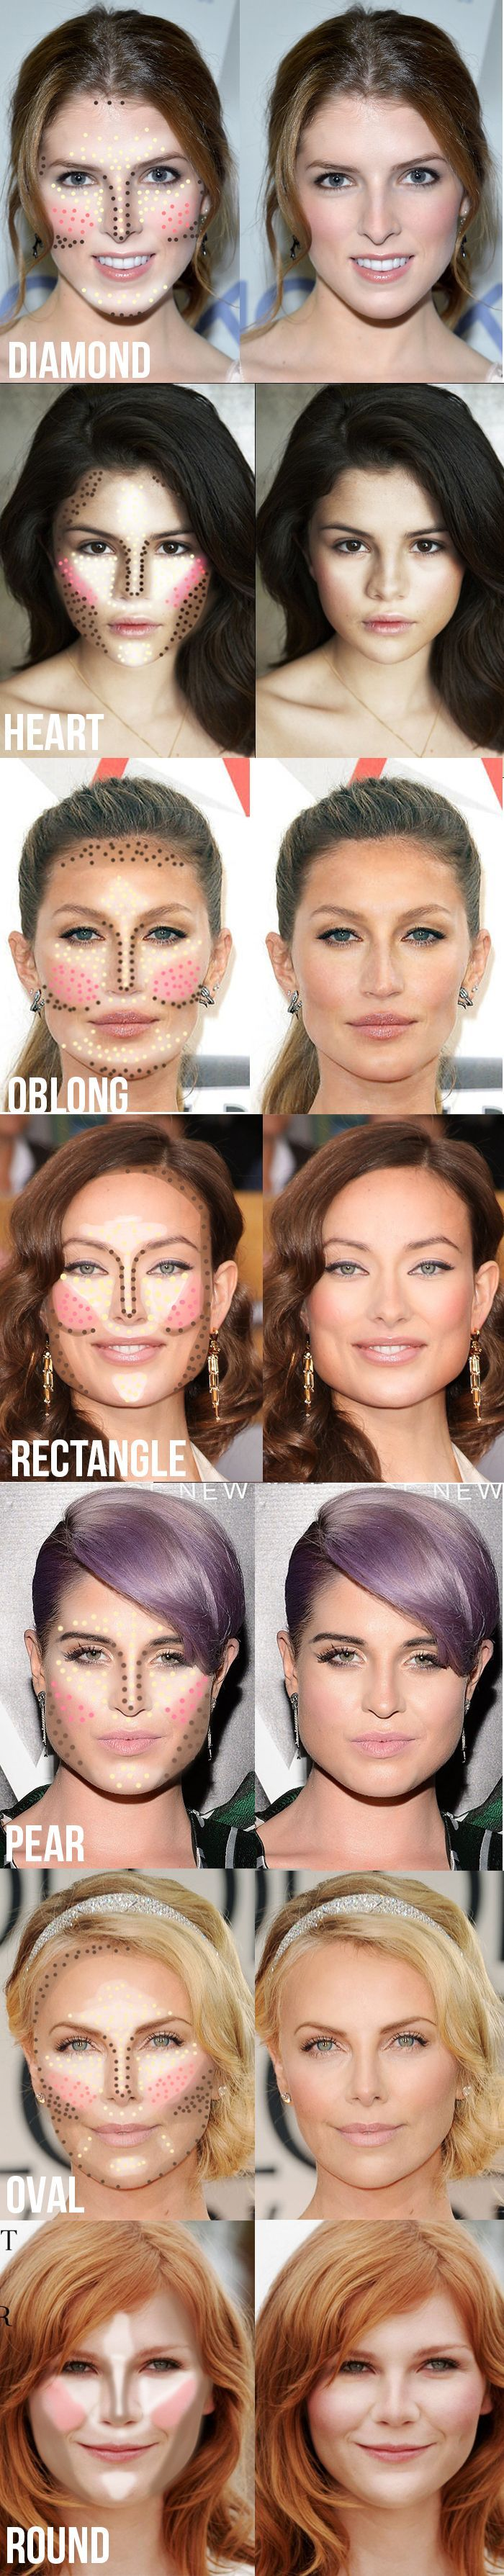 Highlighting and contouring based on face shape